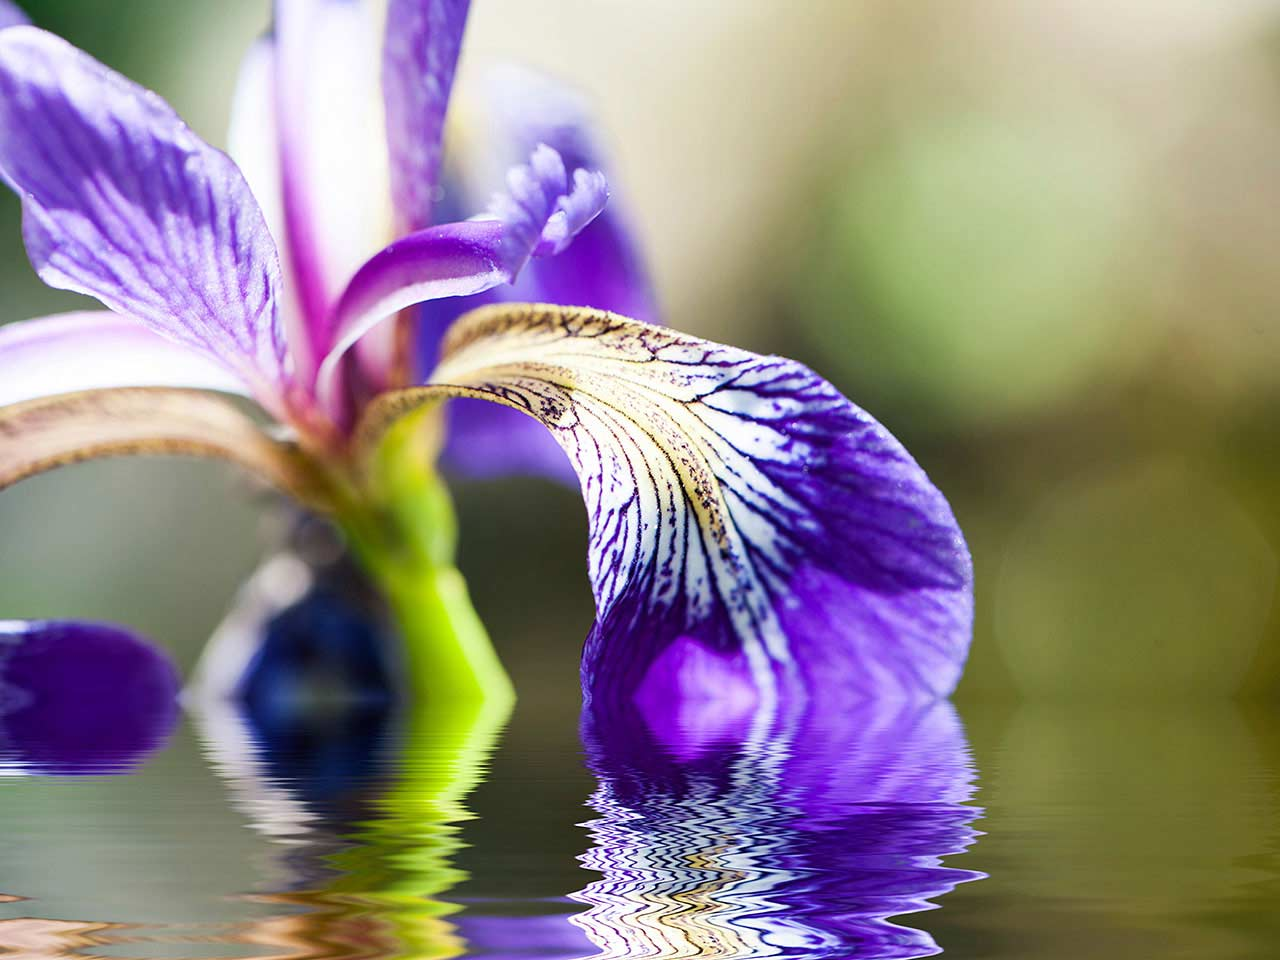 Beareded iris in water